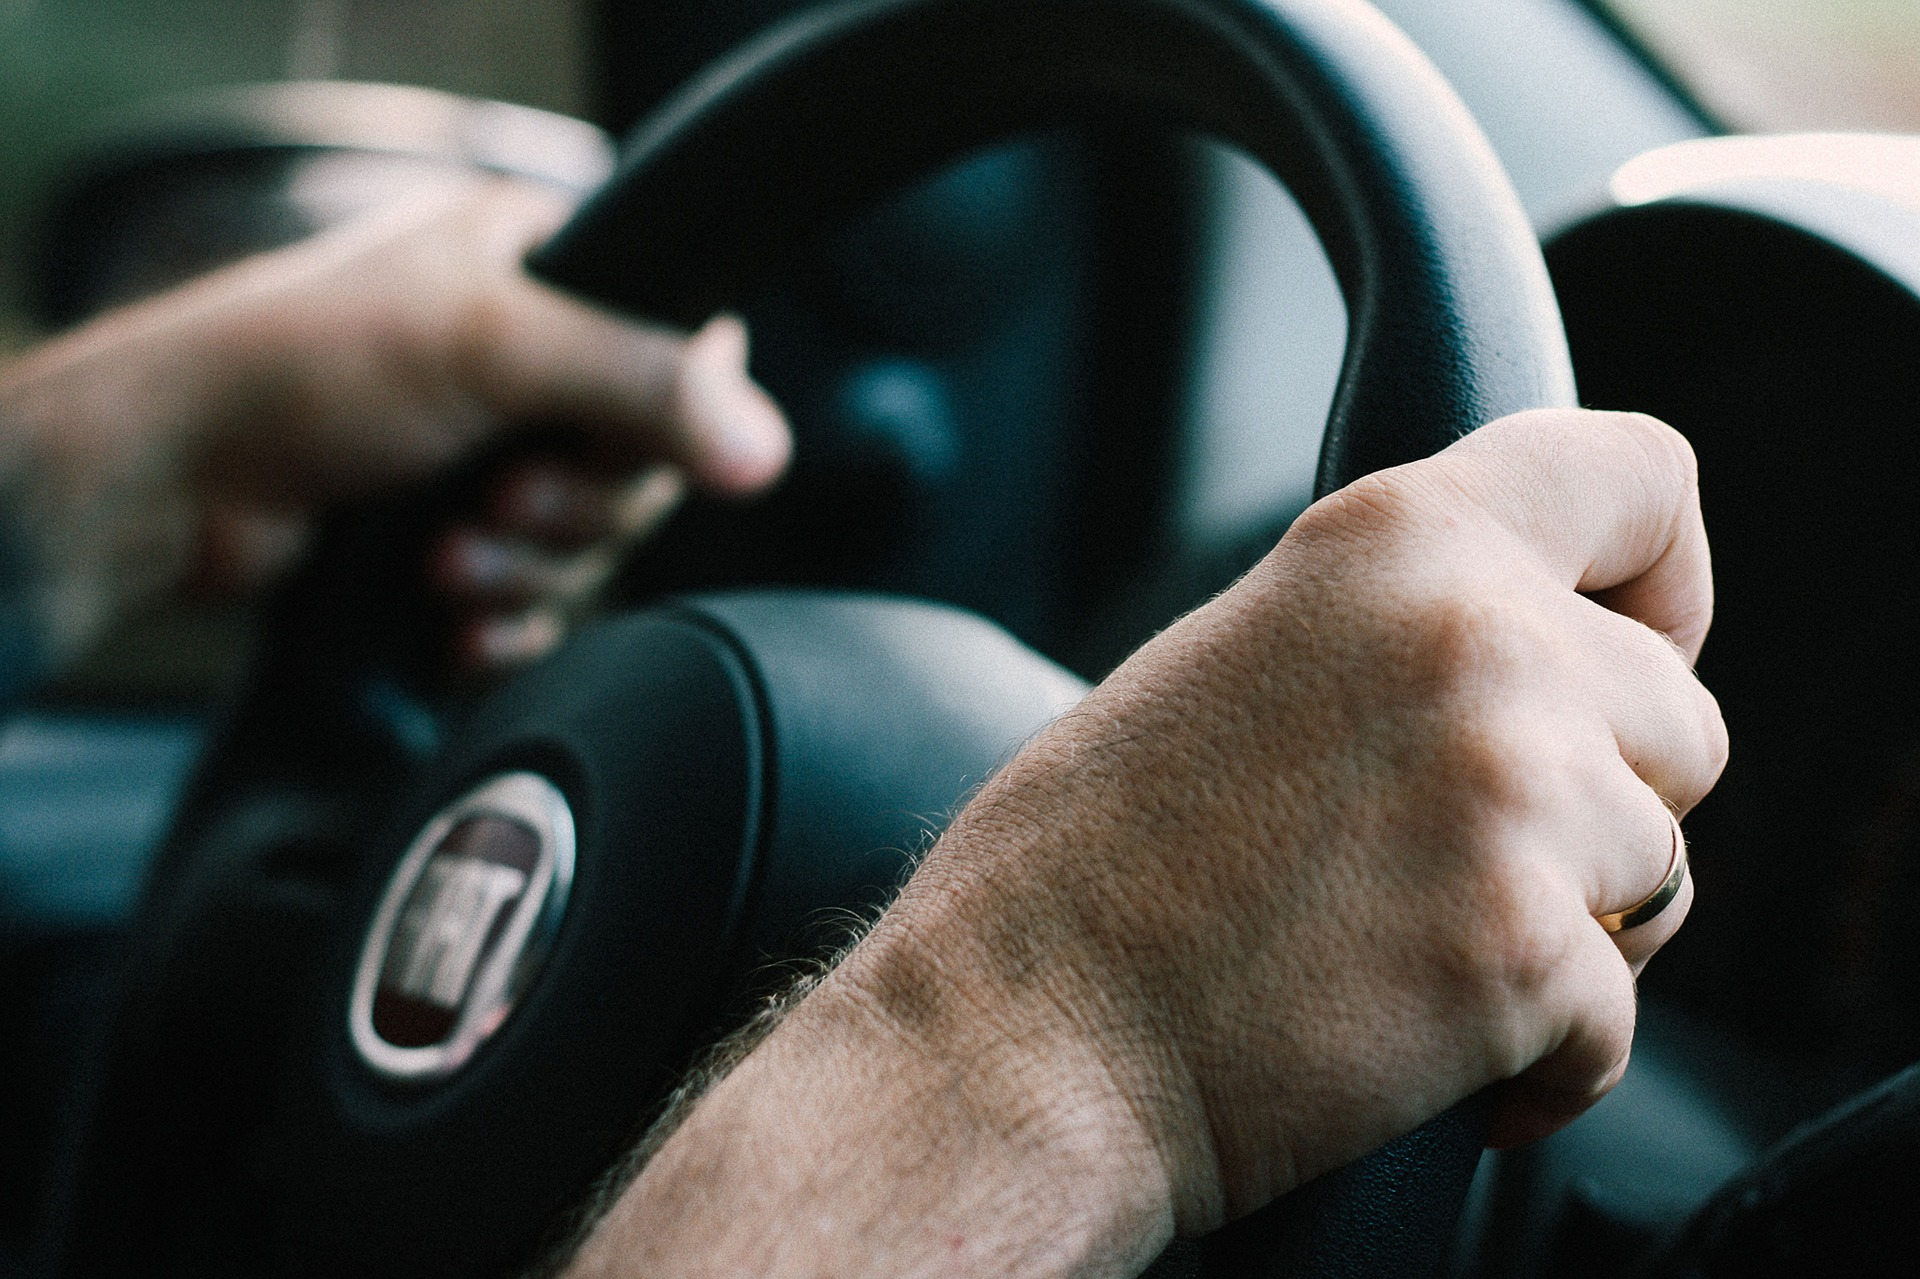 hands on steering wheel for blog about preventing drowsy driving